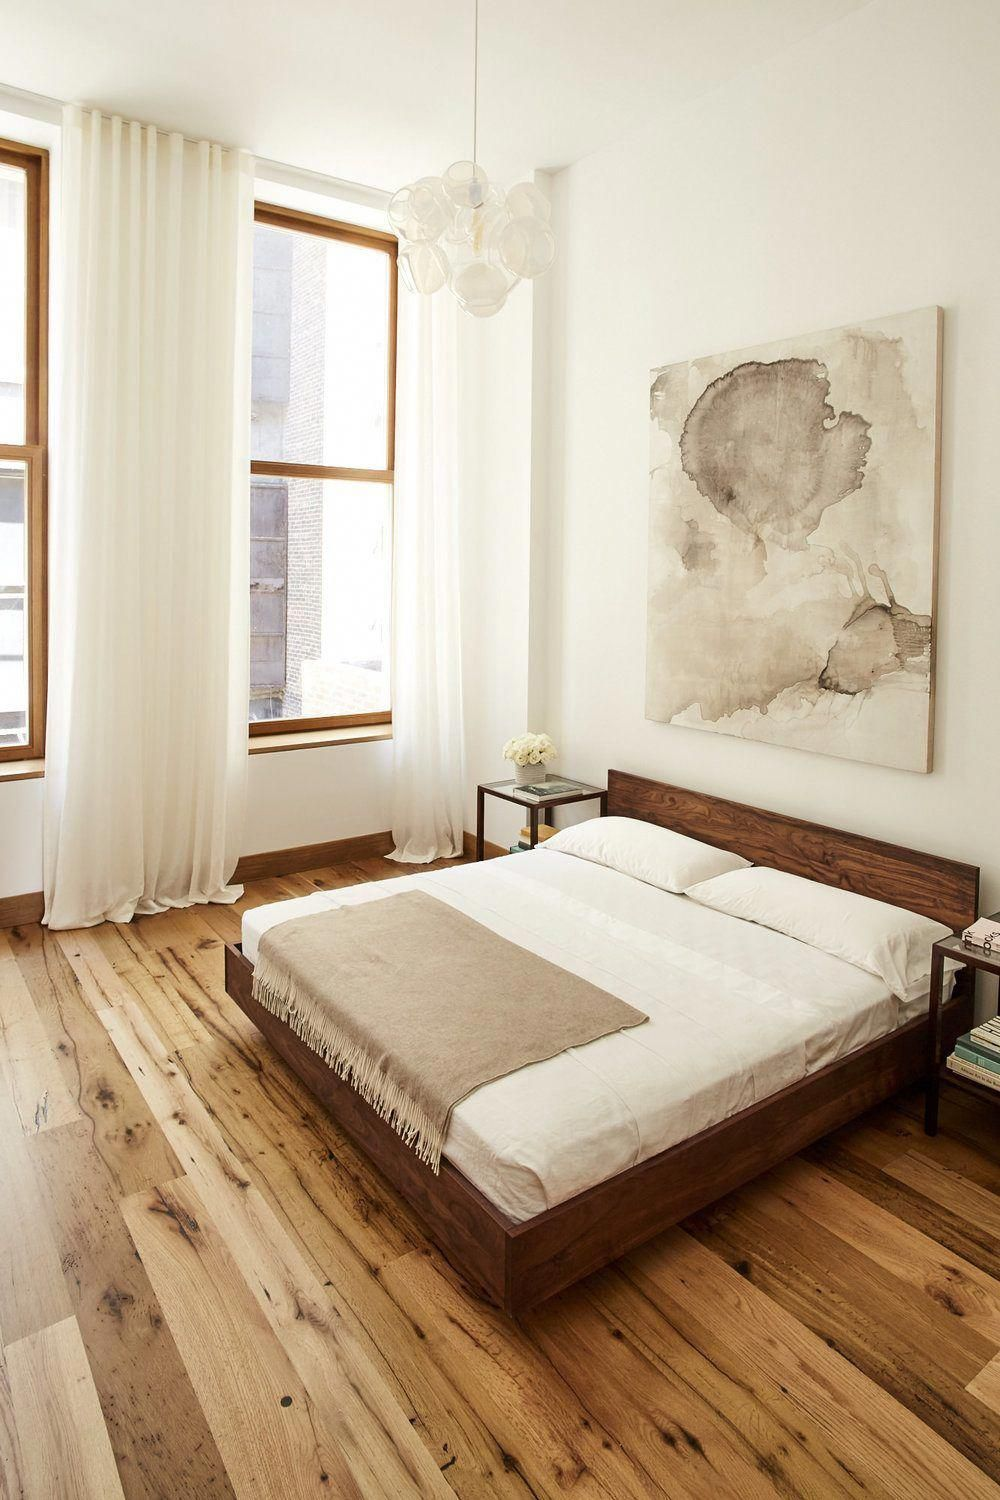 Extraordinary laminate wood flooring kindly visit our